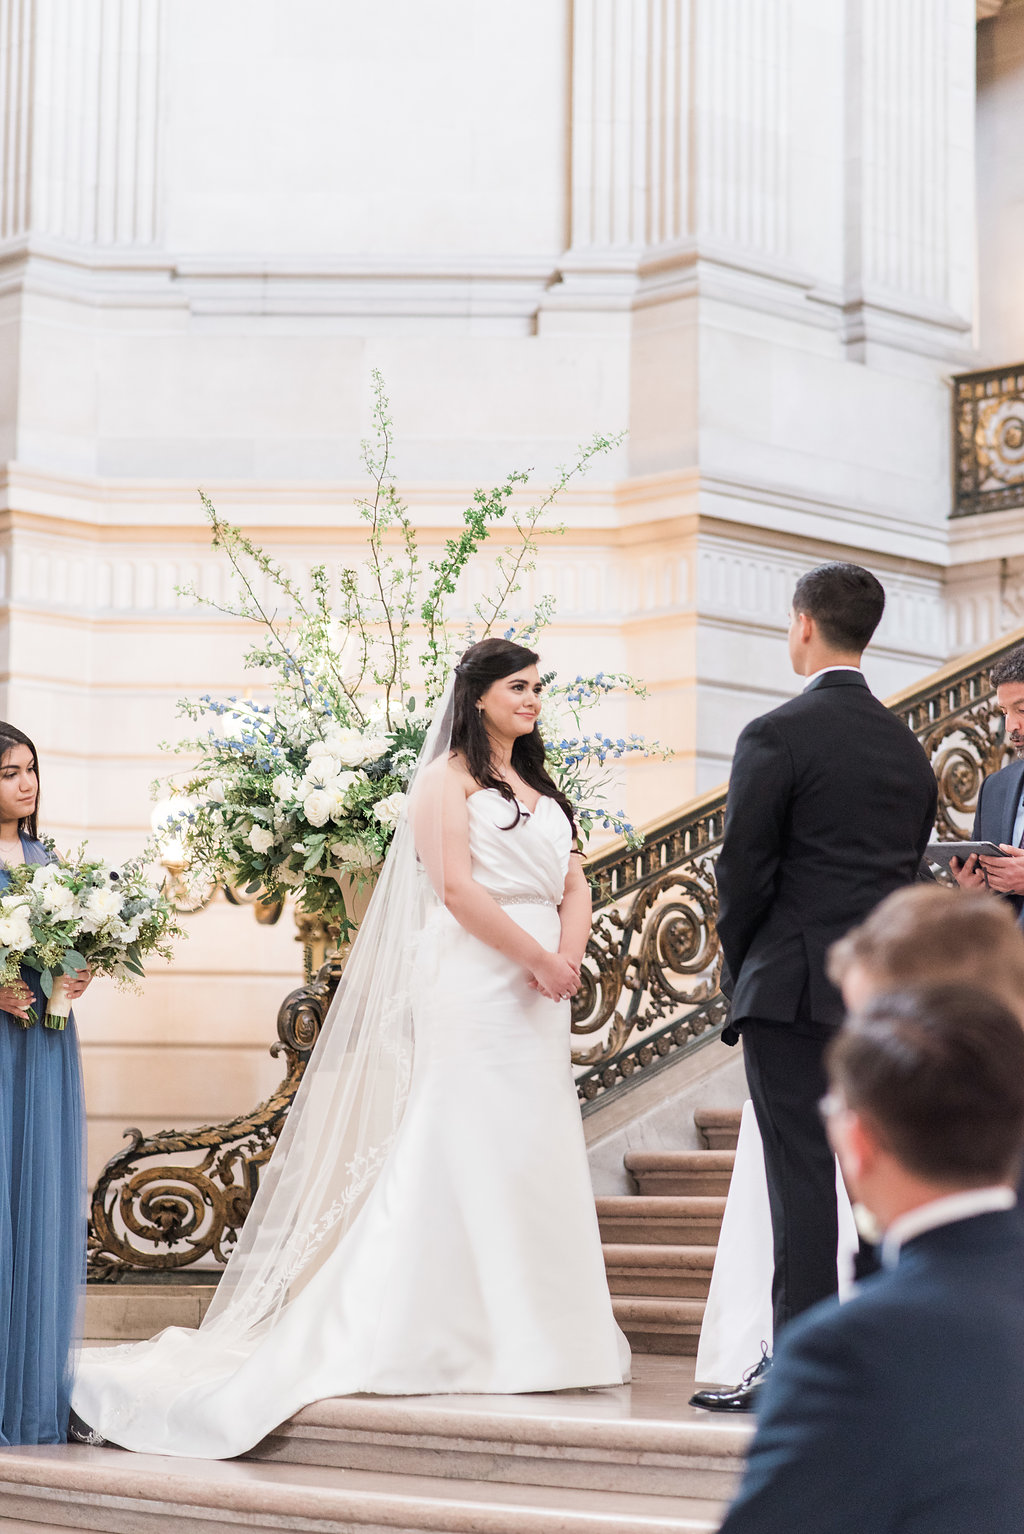 John&Ameera_CityHallWedding-88.jpg